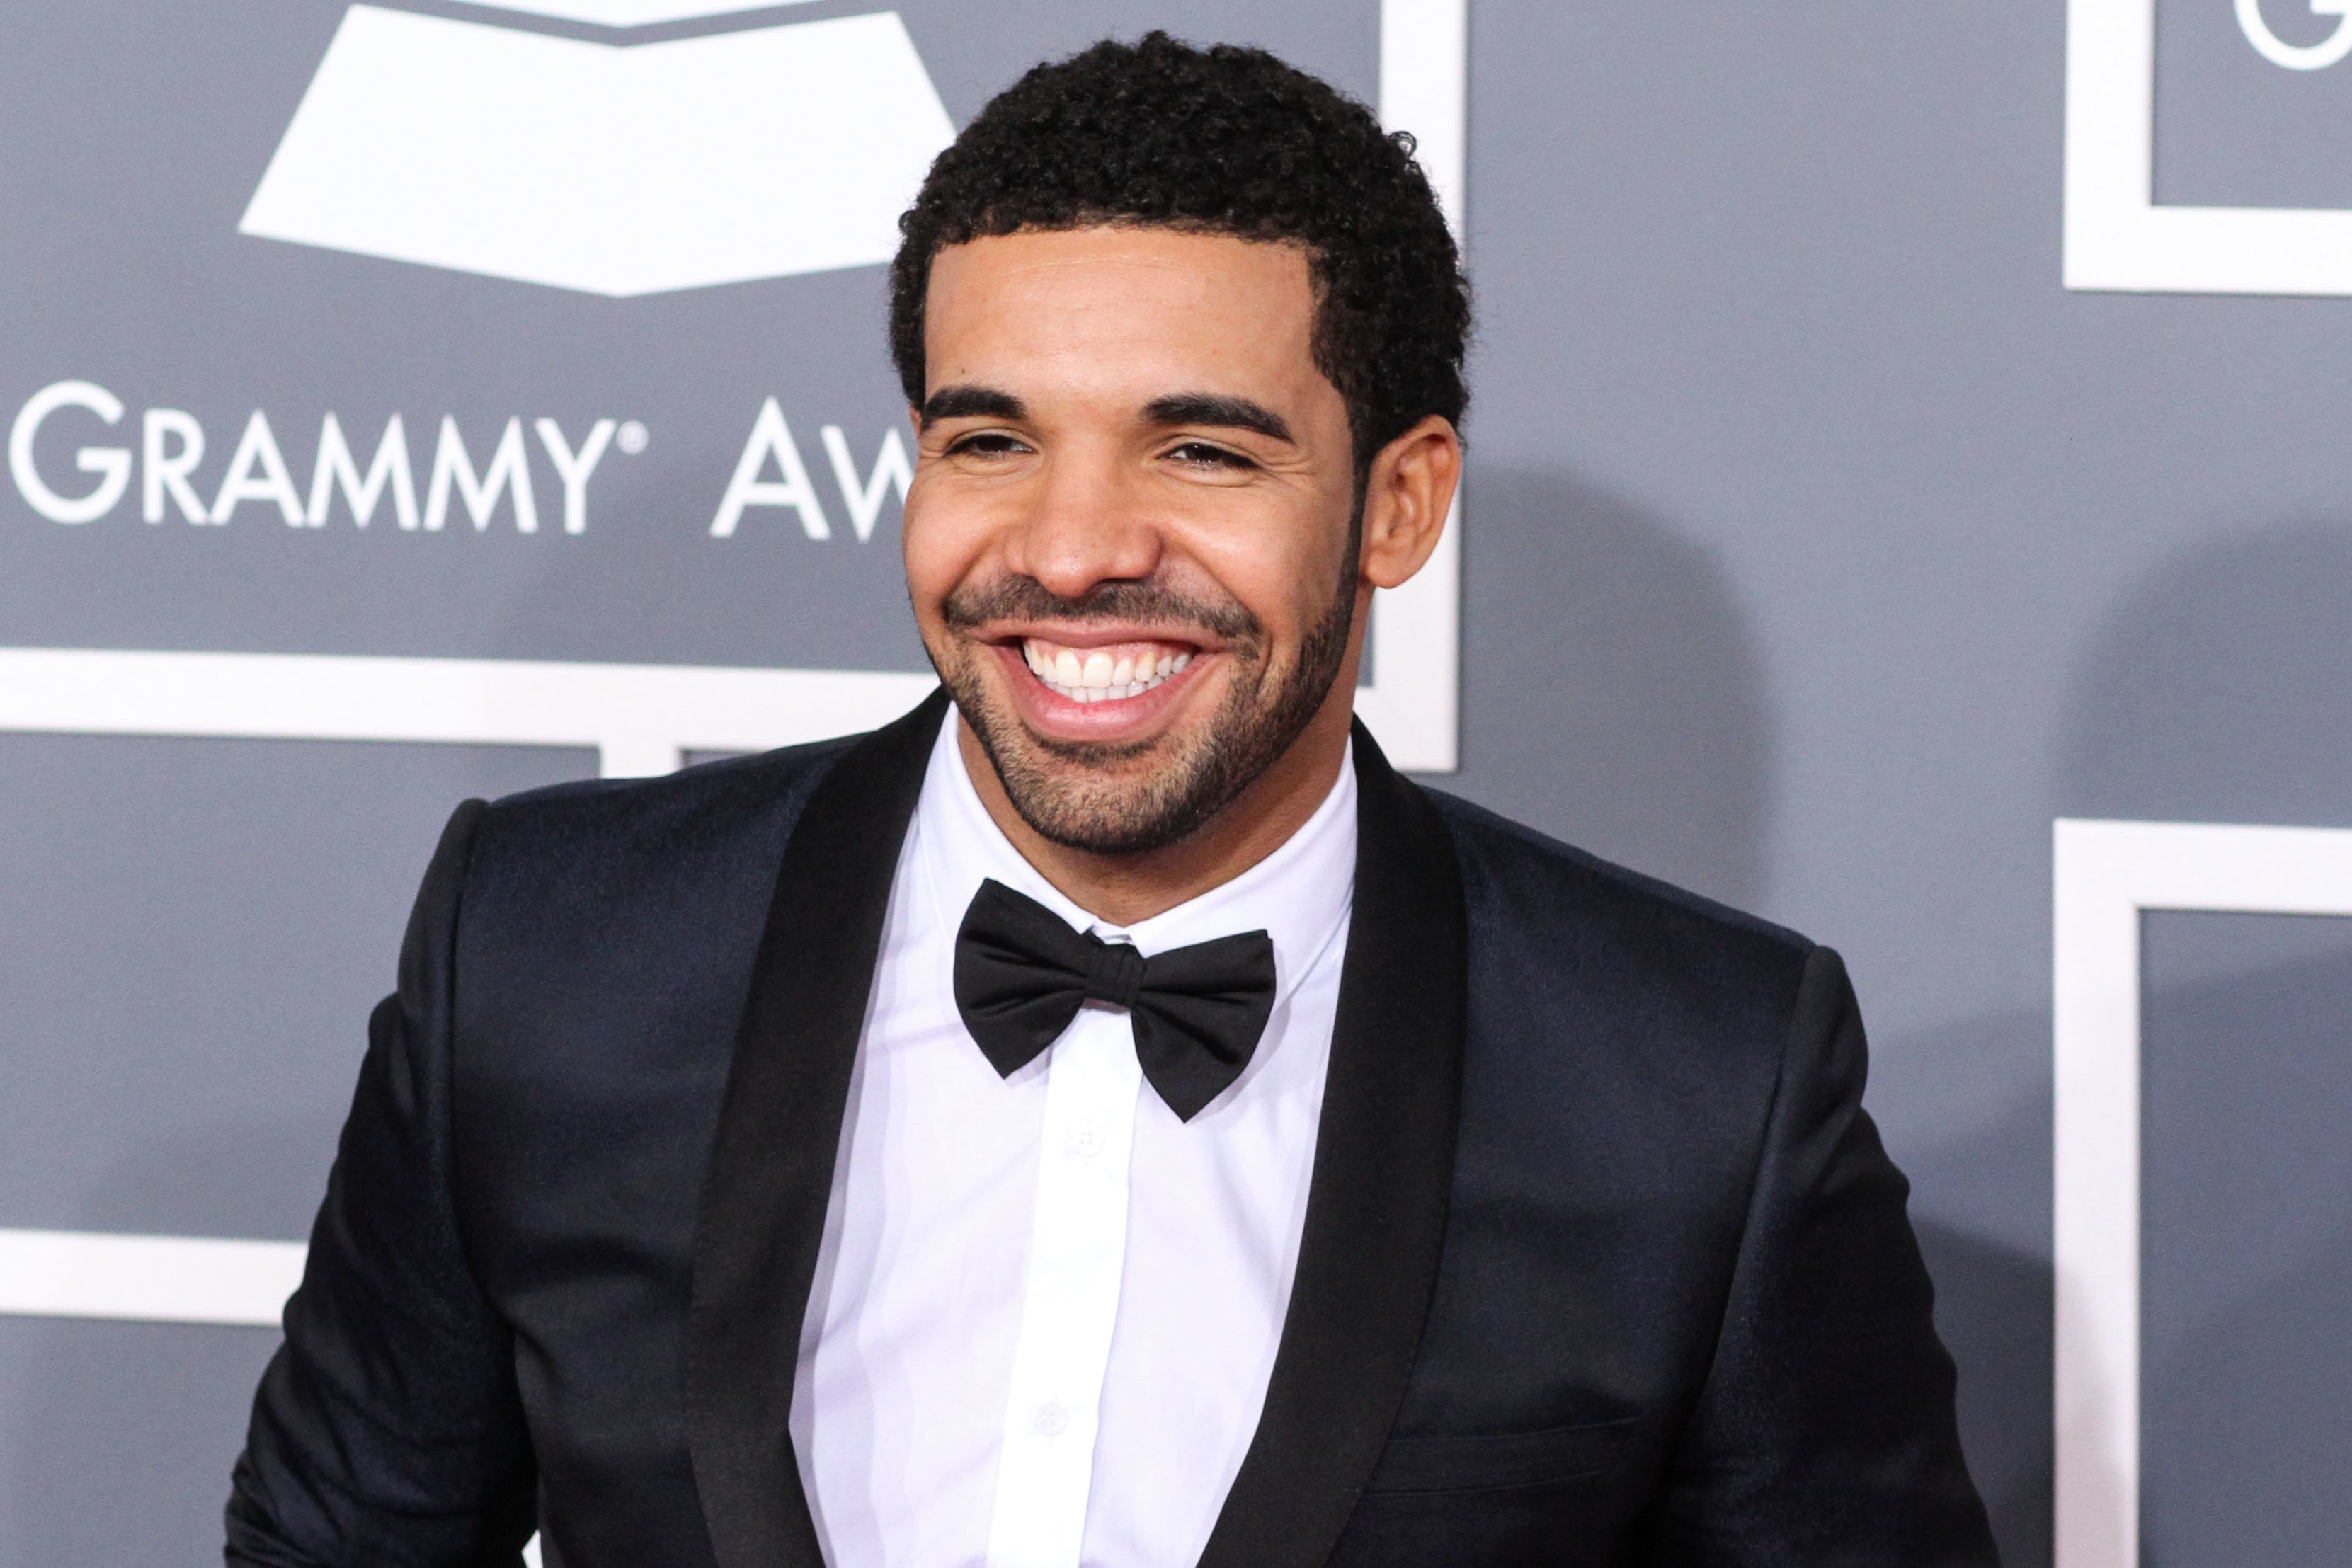 Drake apologises after calling Kylie Jenner a 'side piece' in leaked song